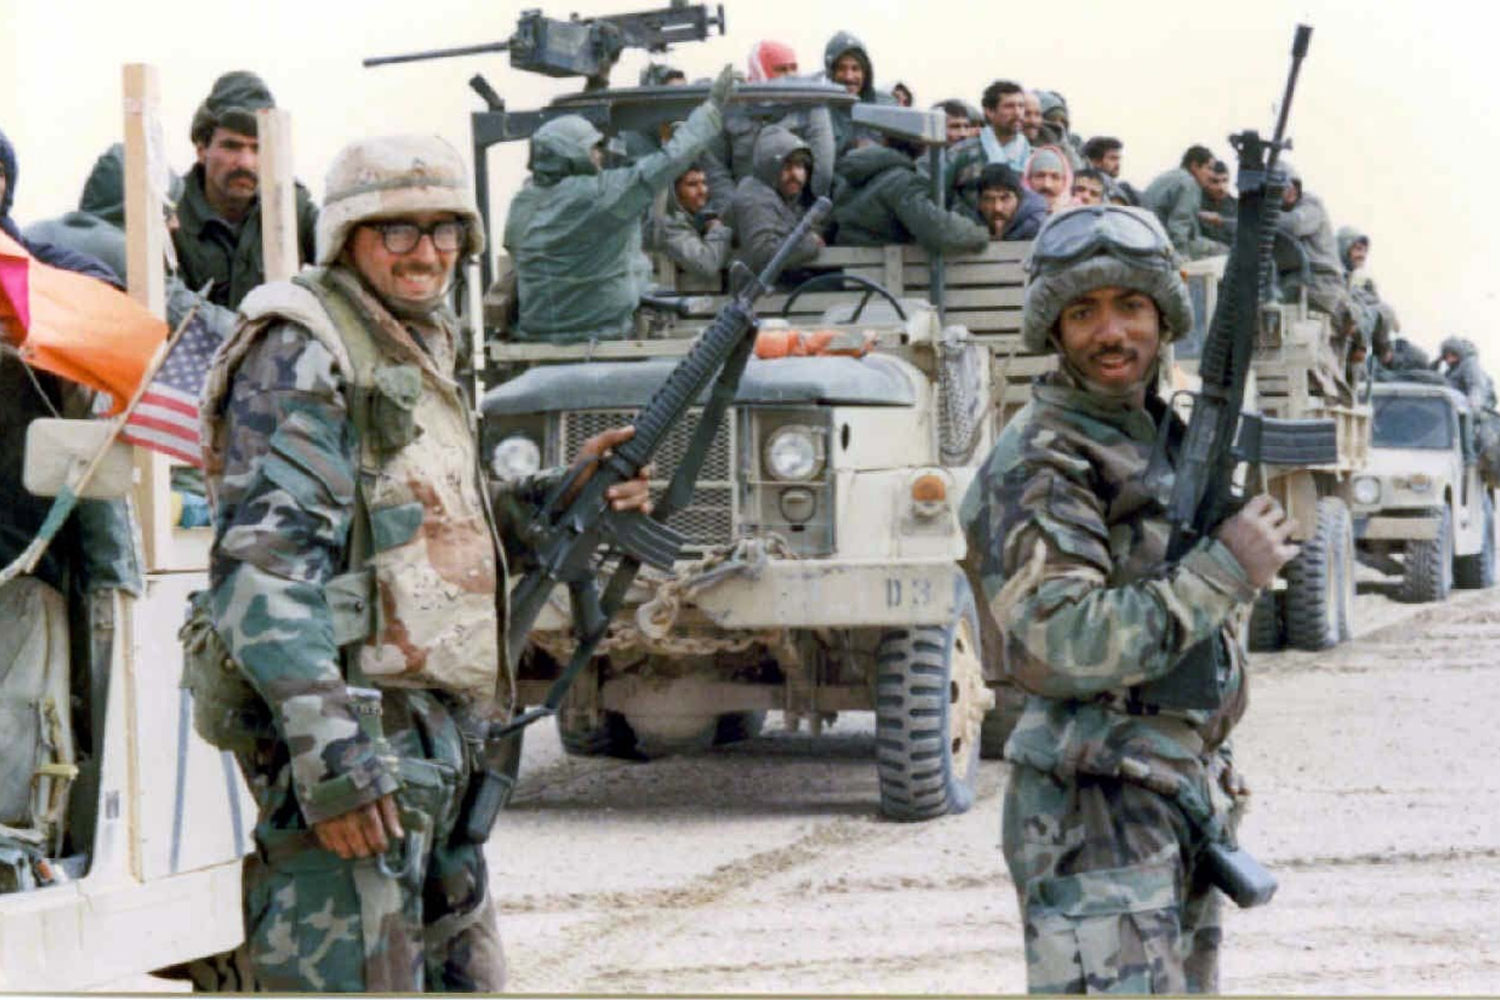 the events that led to the 1991 gulf war Operation desert storm, popularly known as the first gulf war, was the successful us-allied response to iraq's attempt to overwhelm neighboring kuwait kuwait's liberation in 1991 brought to the battlefield a new era of military technology.